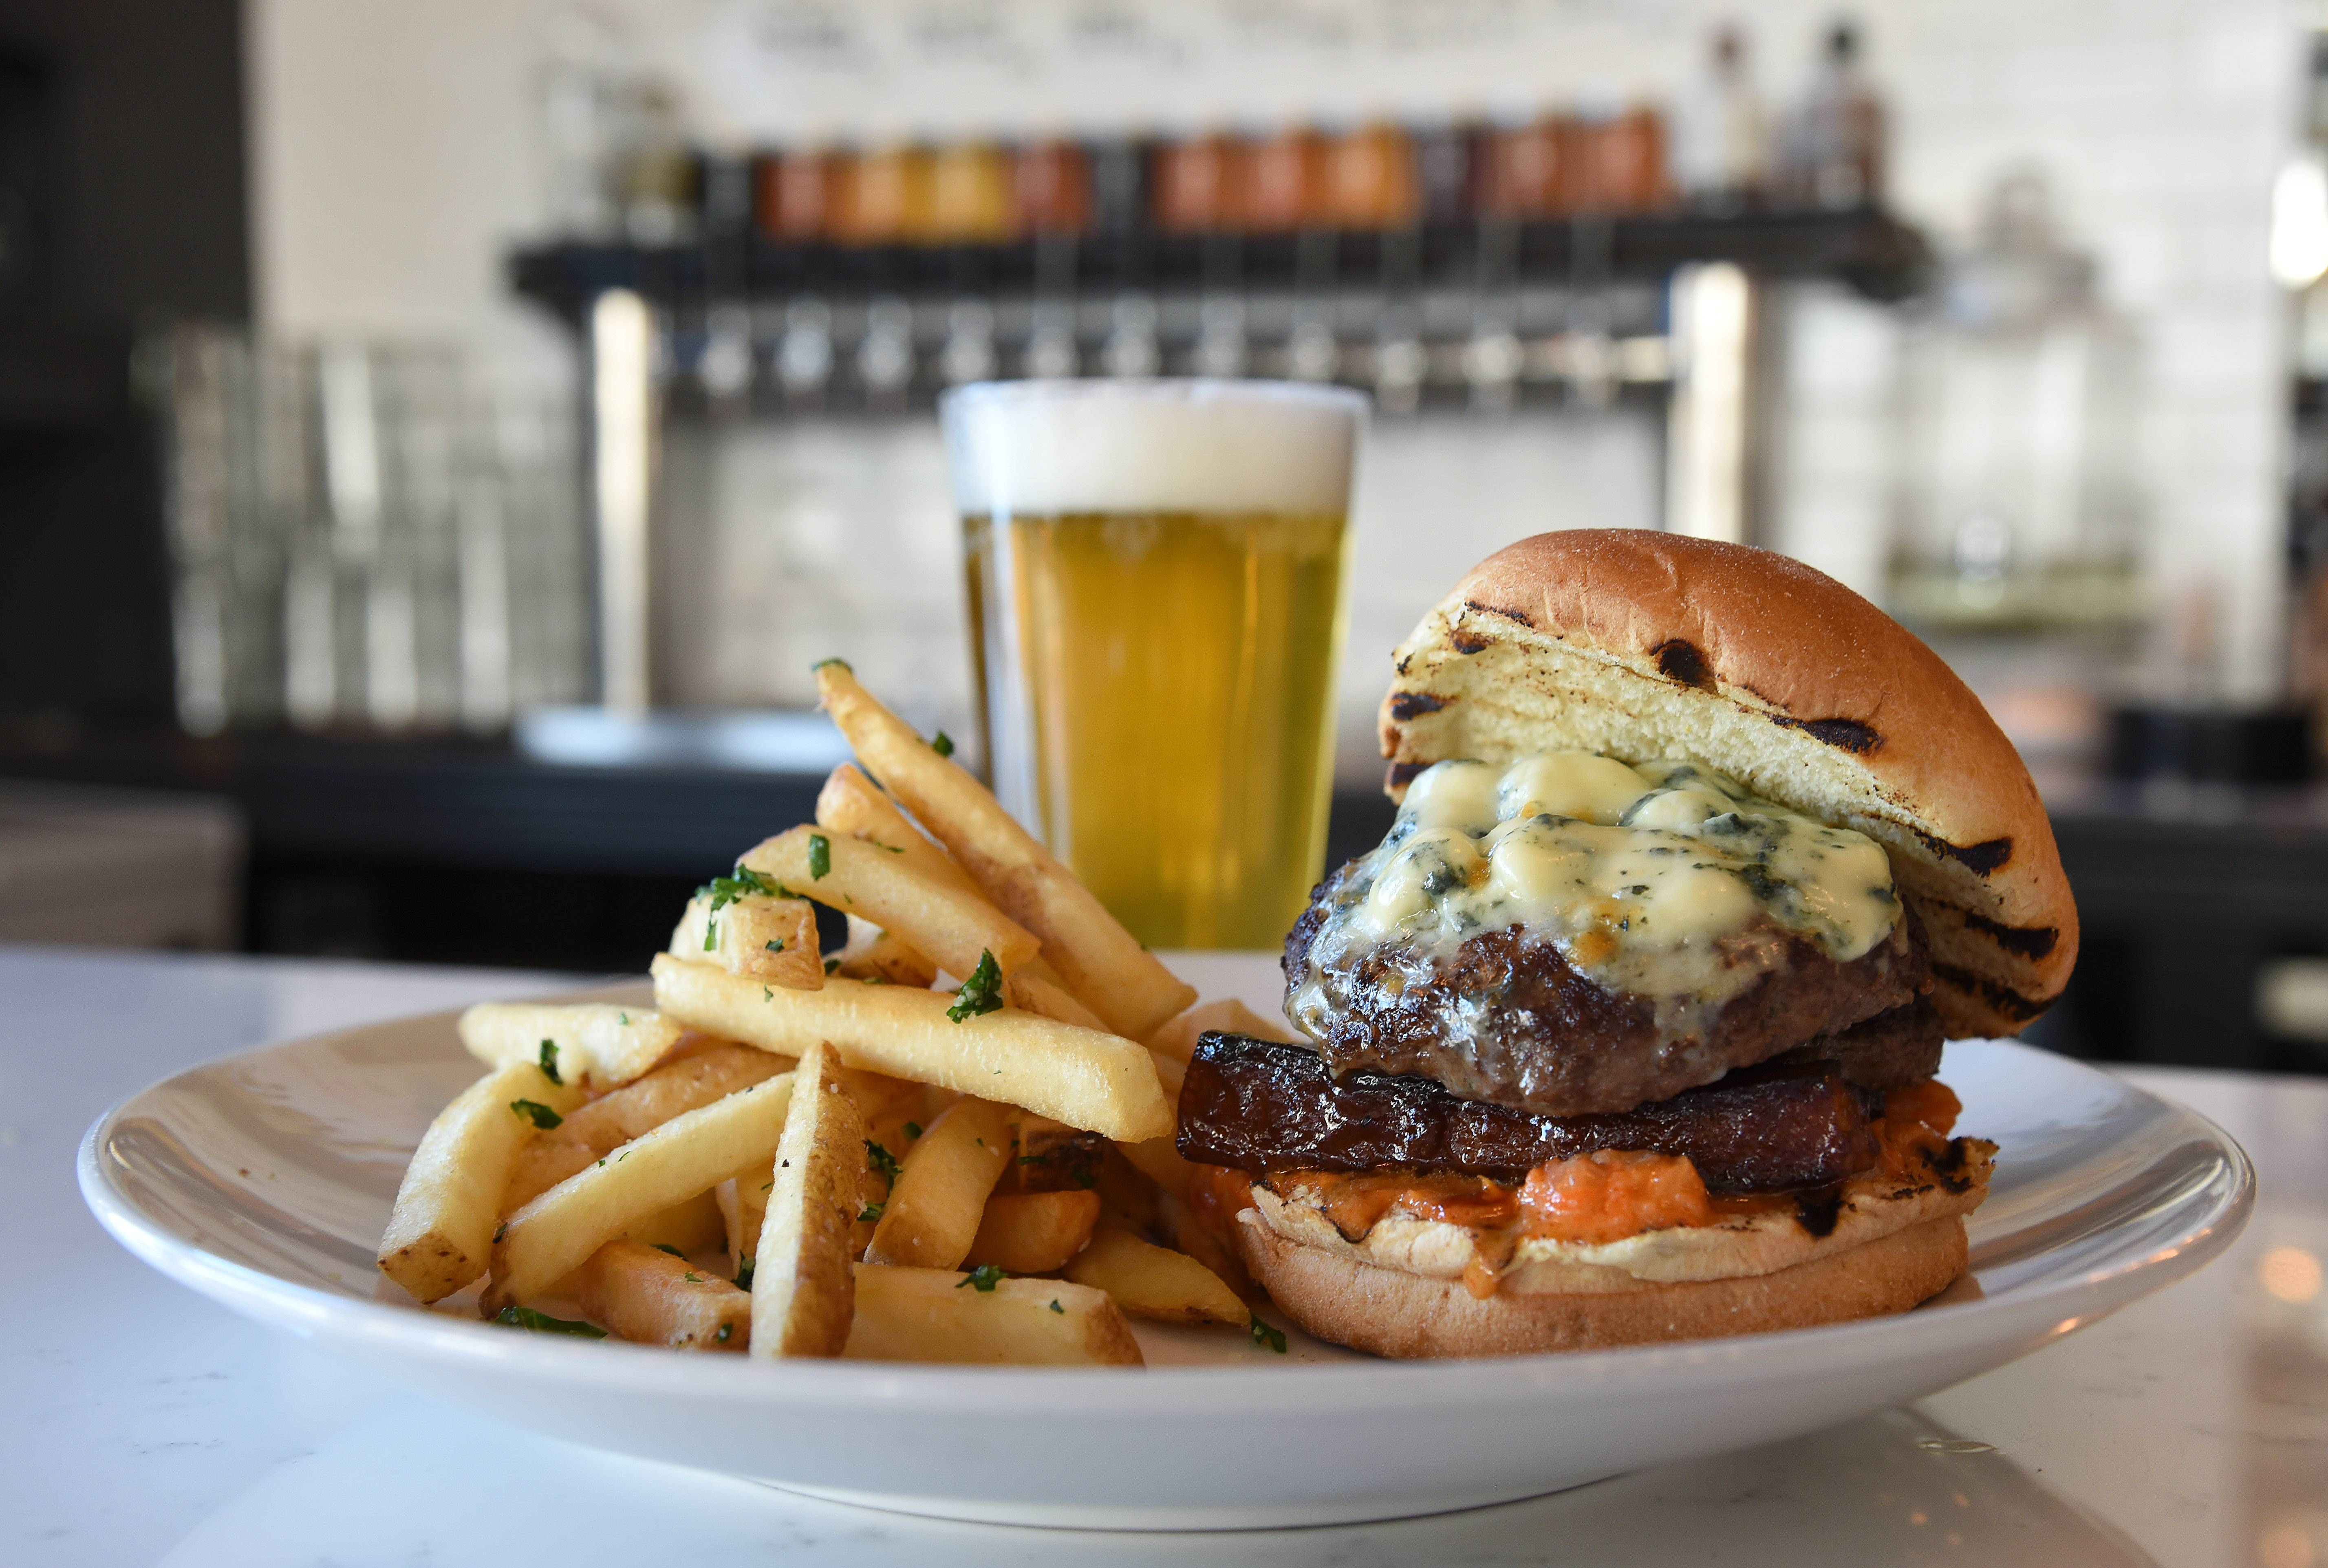 Hungry? The Finery's burger of the month looks to satisfy. Order it with a craft beer like the 5 Rabbit Super Pils.